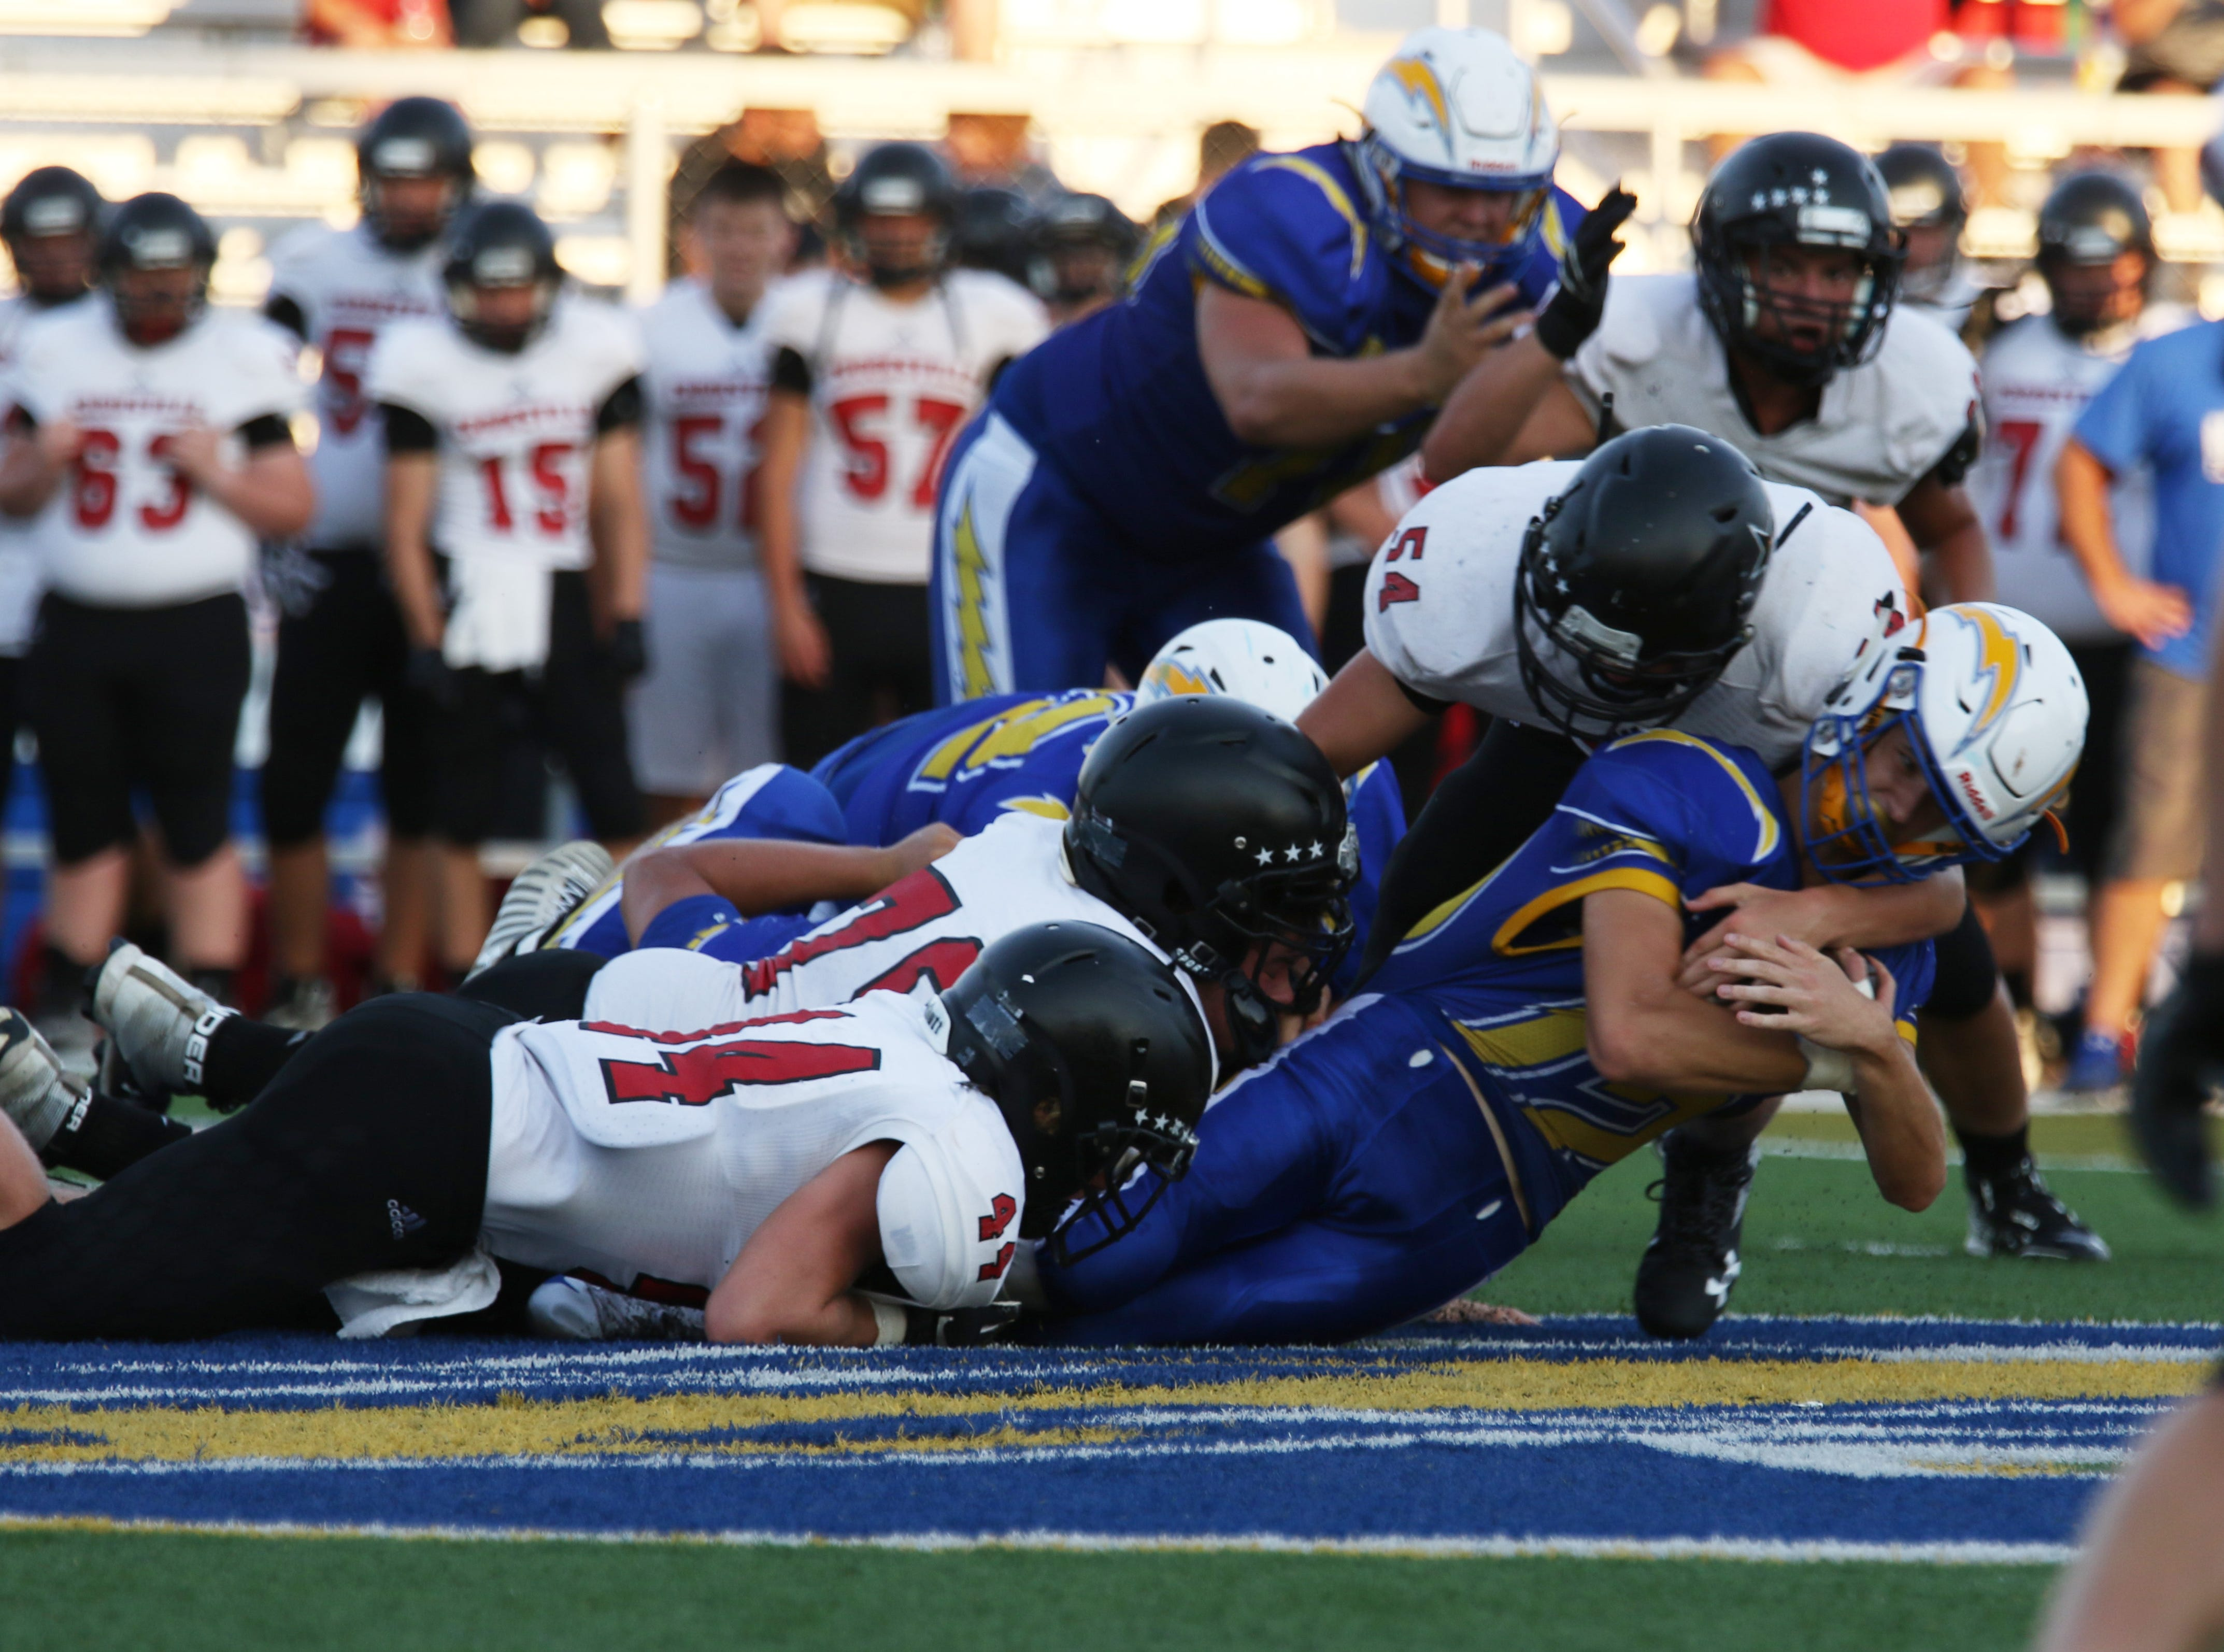 A trio of Crooksville defenders stop a Philo ball carrier.